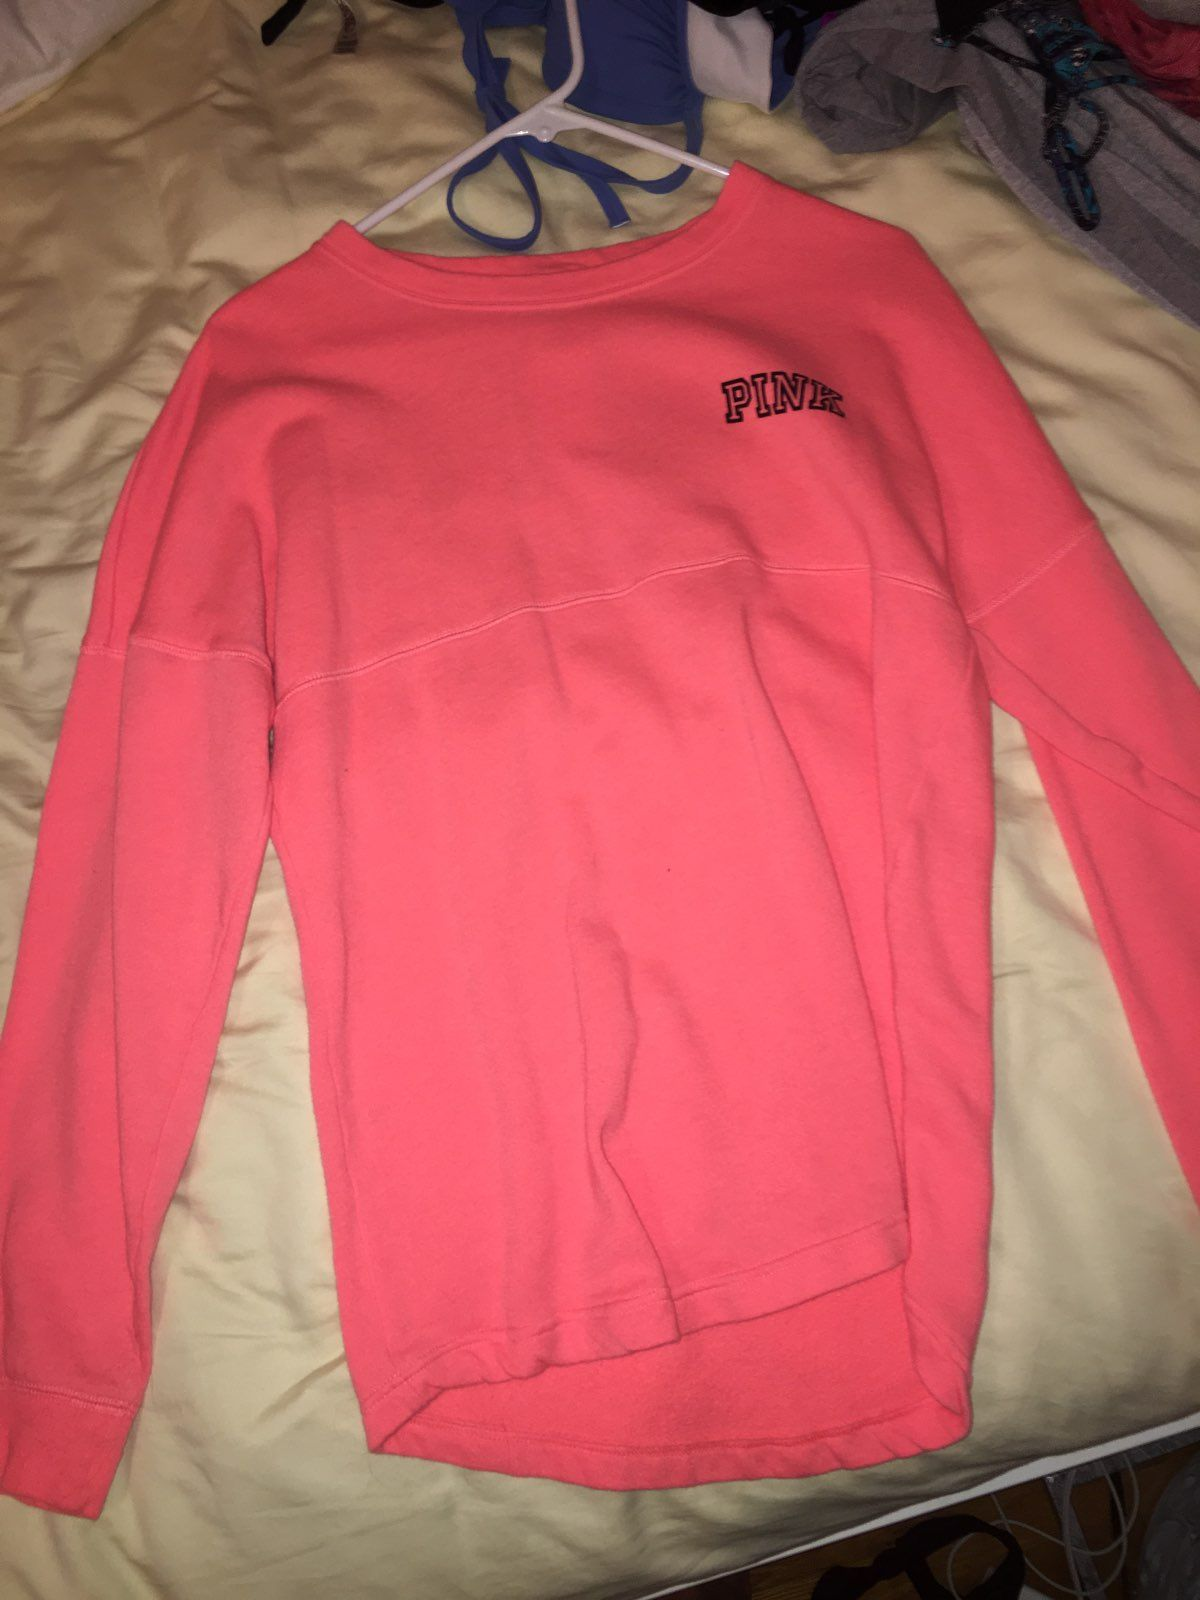 HOT PINK VS PINK CREWNECK SWEATER - Mercari: BUY & SELL THINGS YOU ...